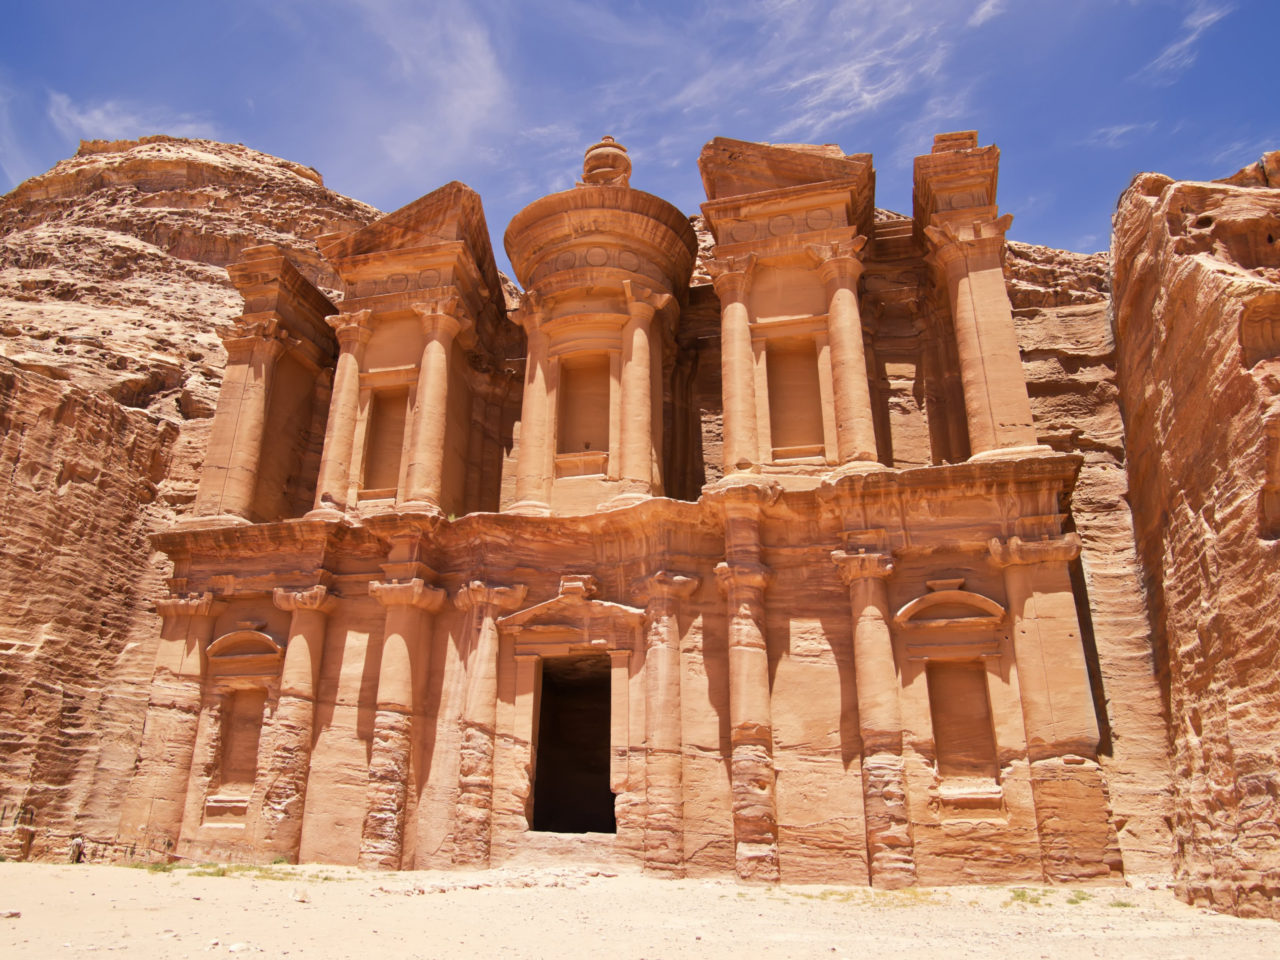 Palace Wallpaper Hd Monastery And Petra Jordan City Of Petra The Capital Of